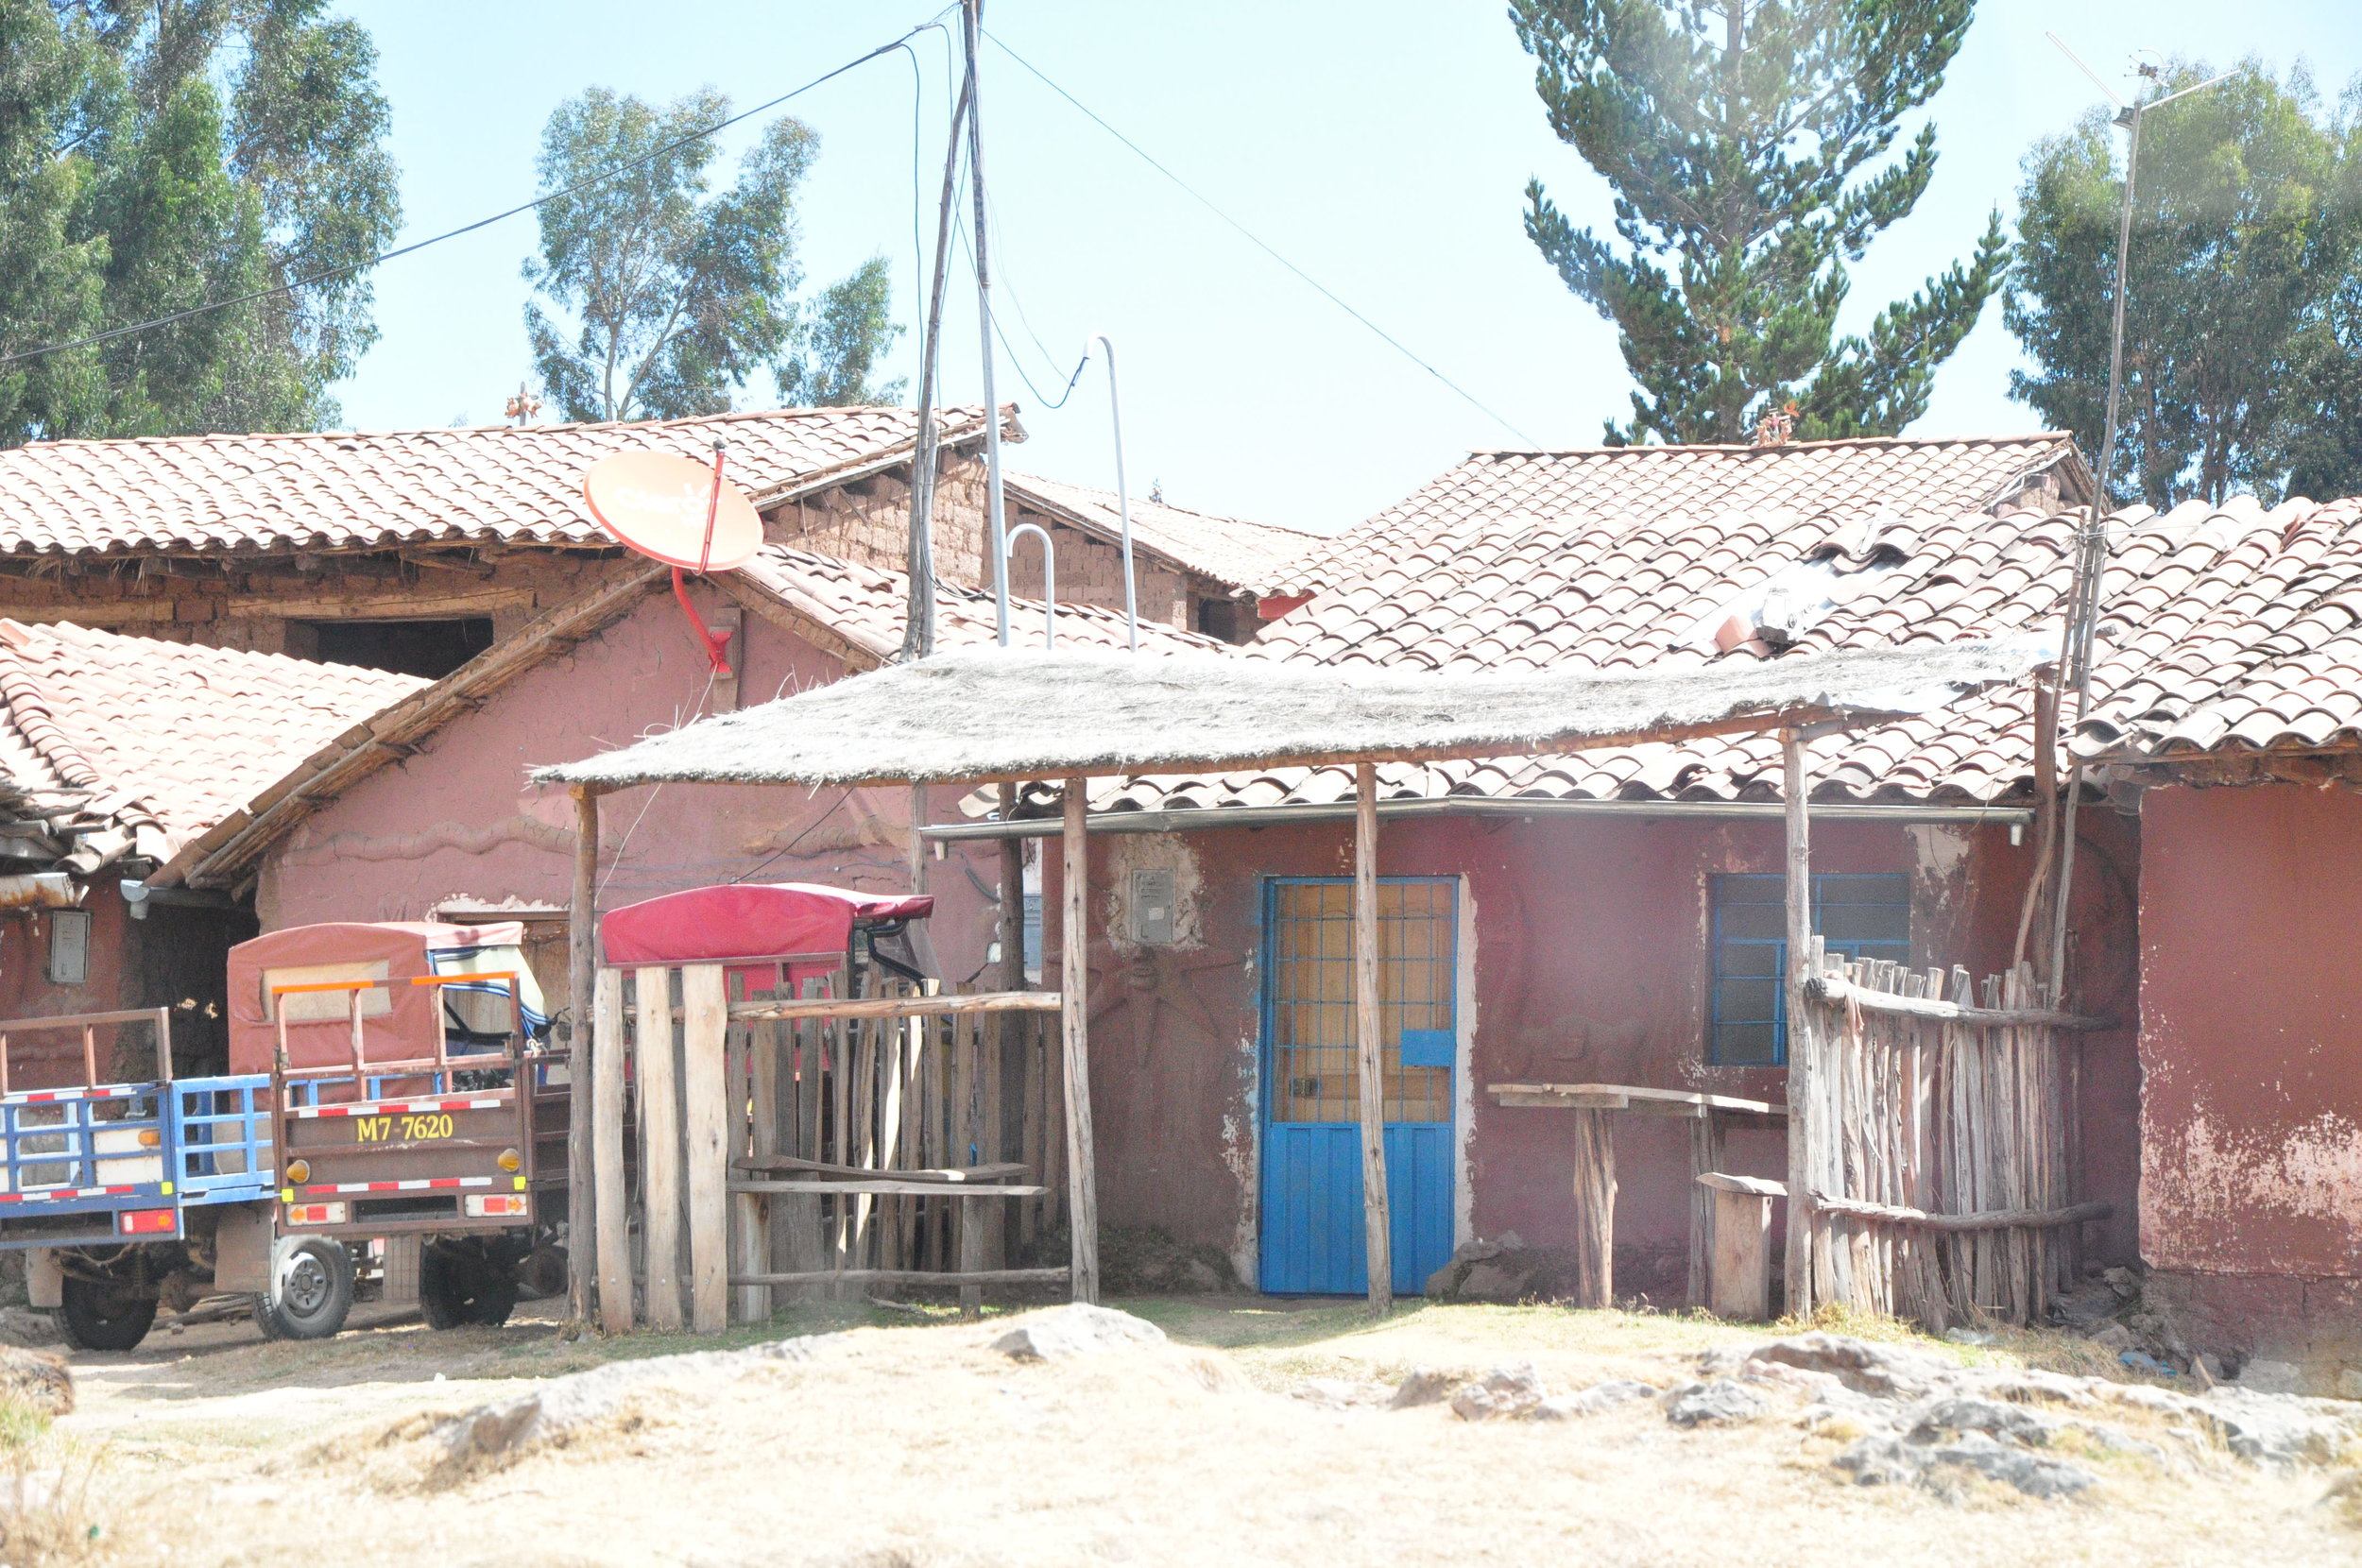 A typical Peruvian home in the countryside